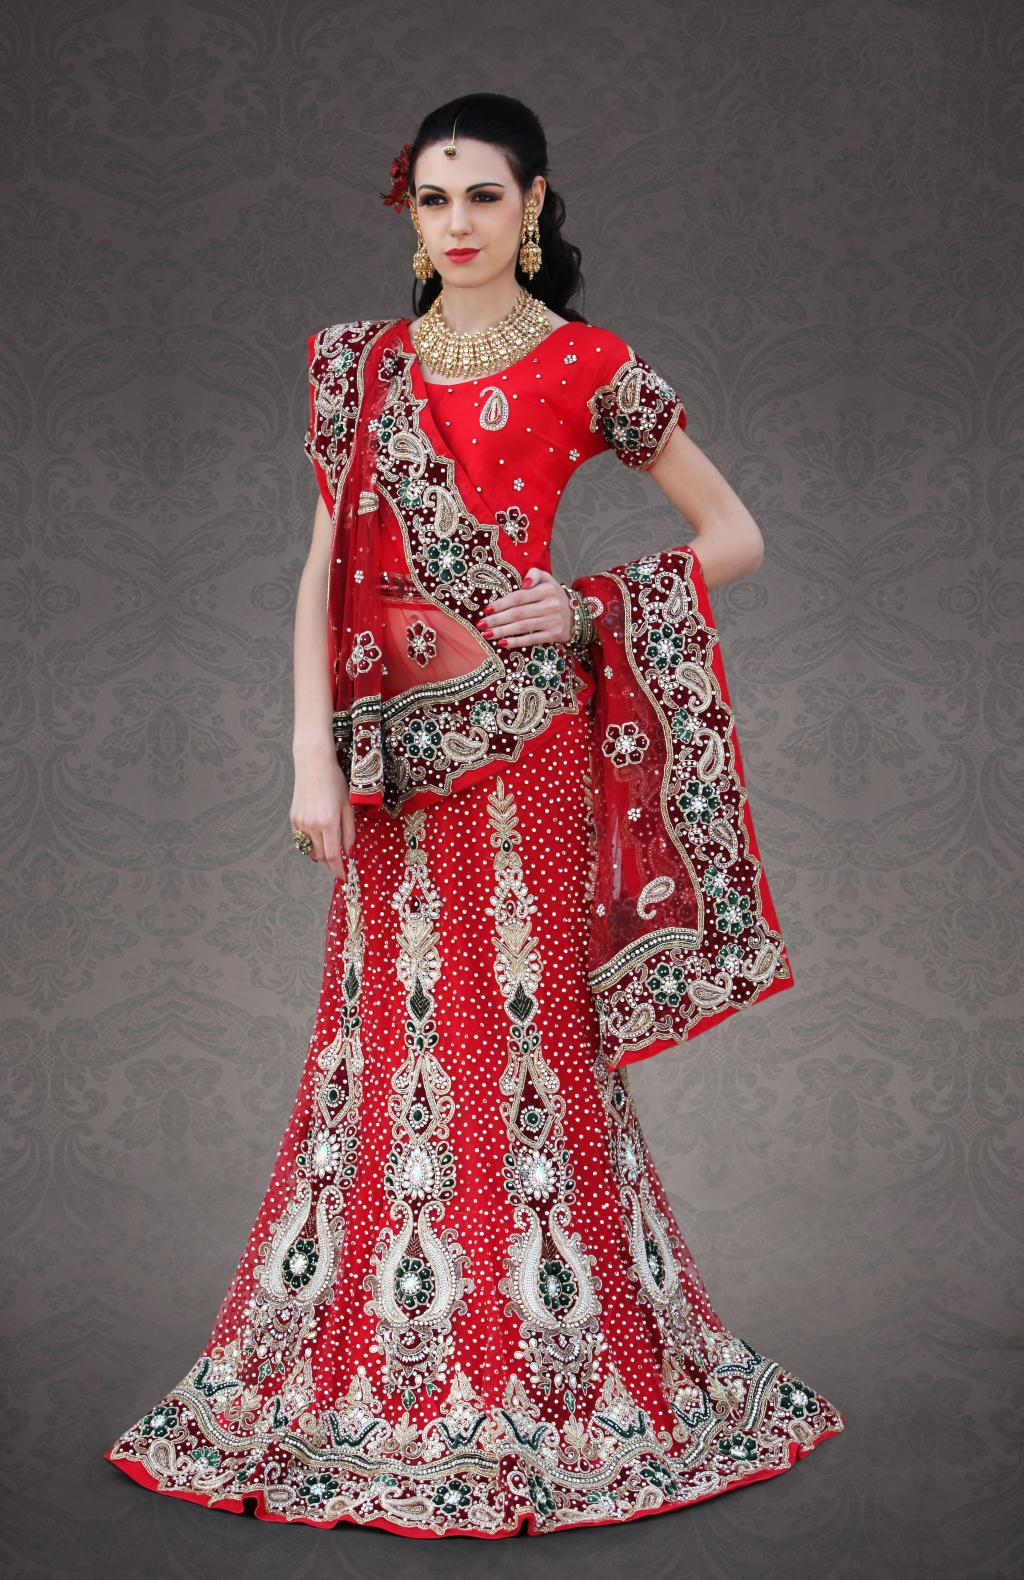 Indian Bridal Lehenga Online Indian Lehnga Dress Suites Design 2014 1024x1580